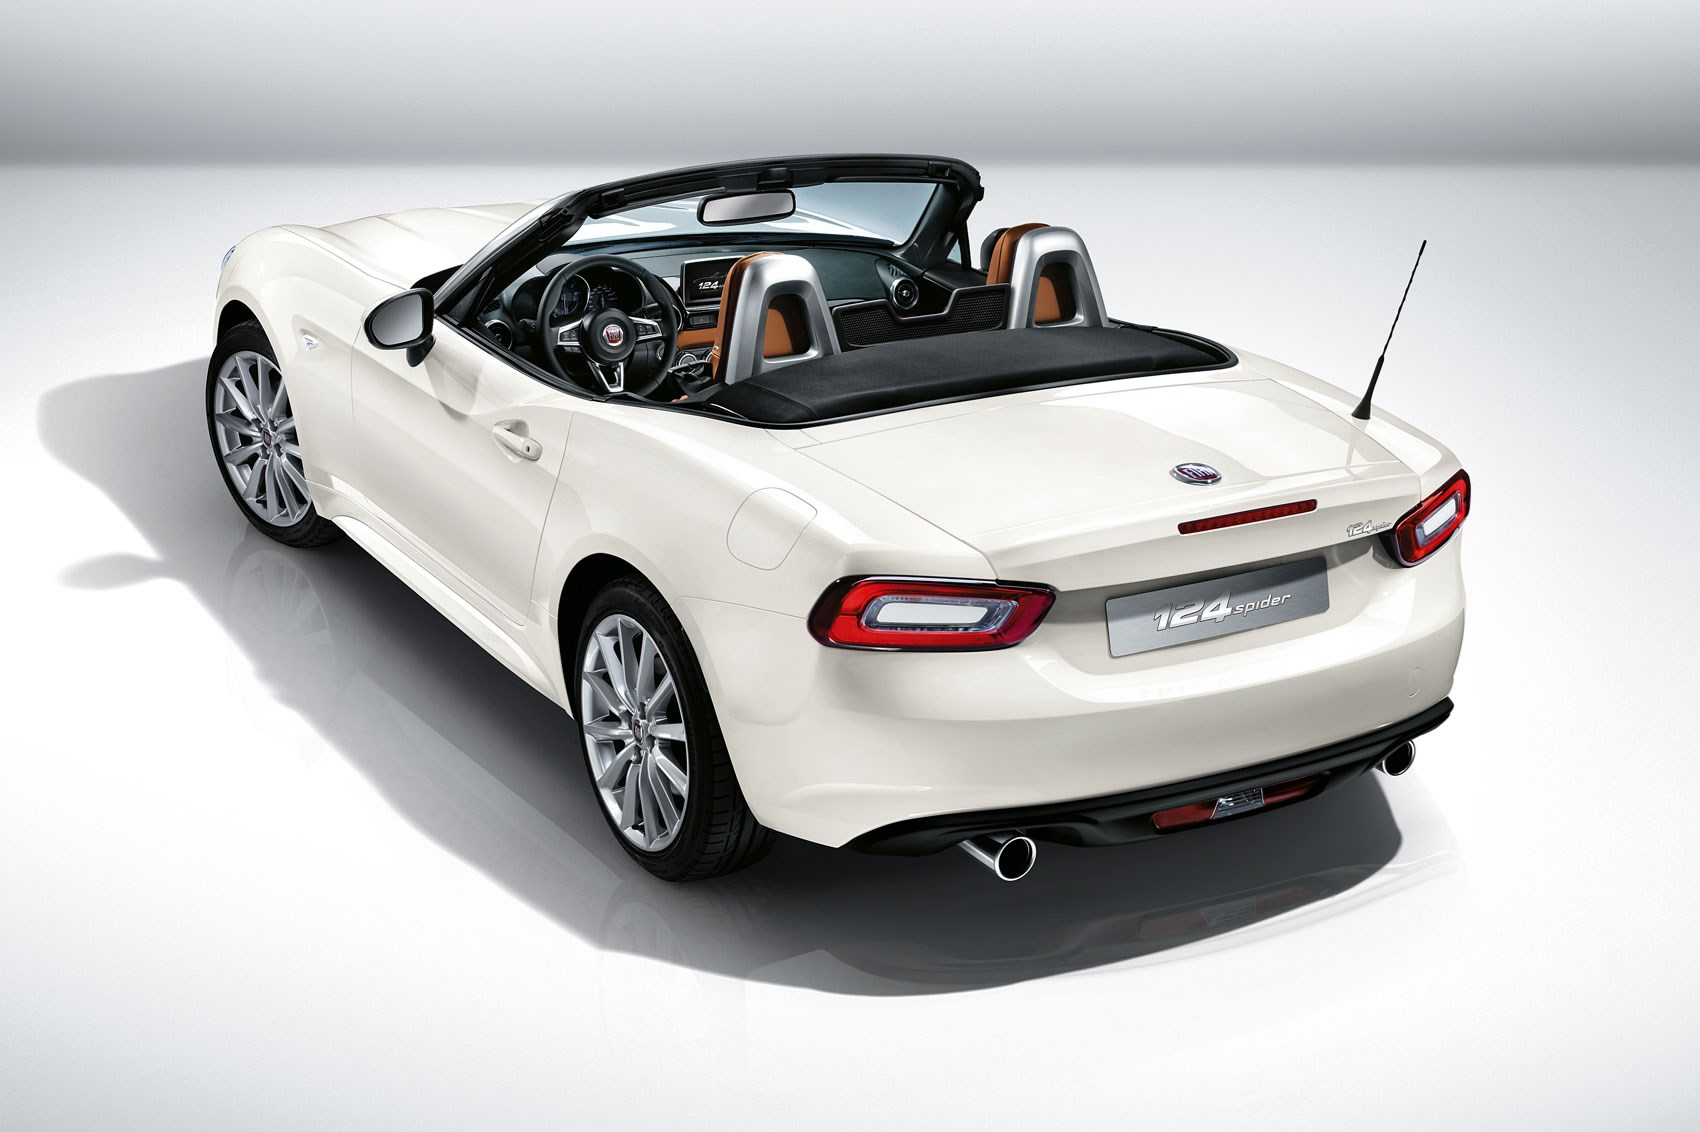 fiat 124 spider revealed at 2015 la show fiat s mx 5 turbo is here by car magazine. Black Bedroom Furniture Sets. Home Design Ideas